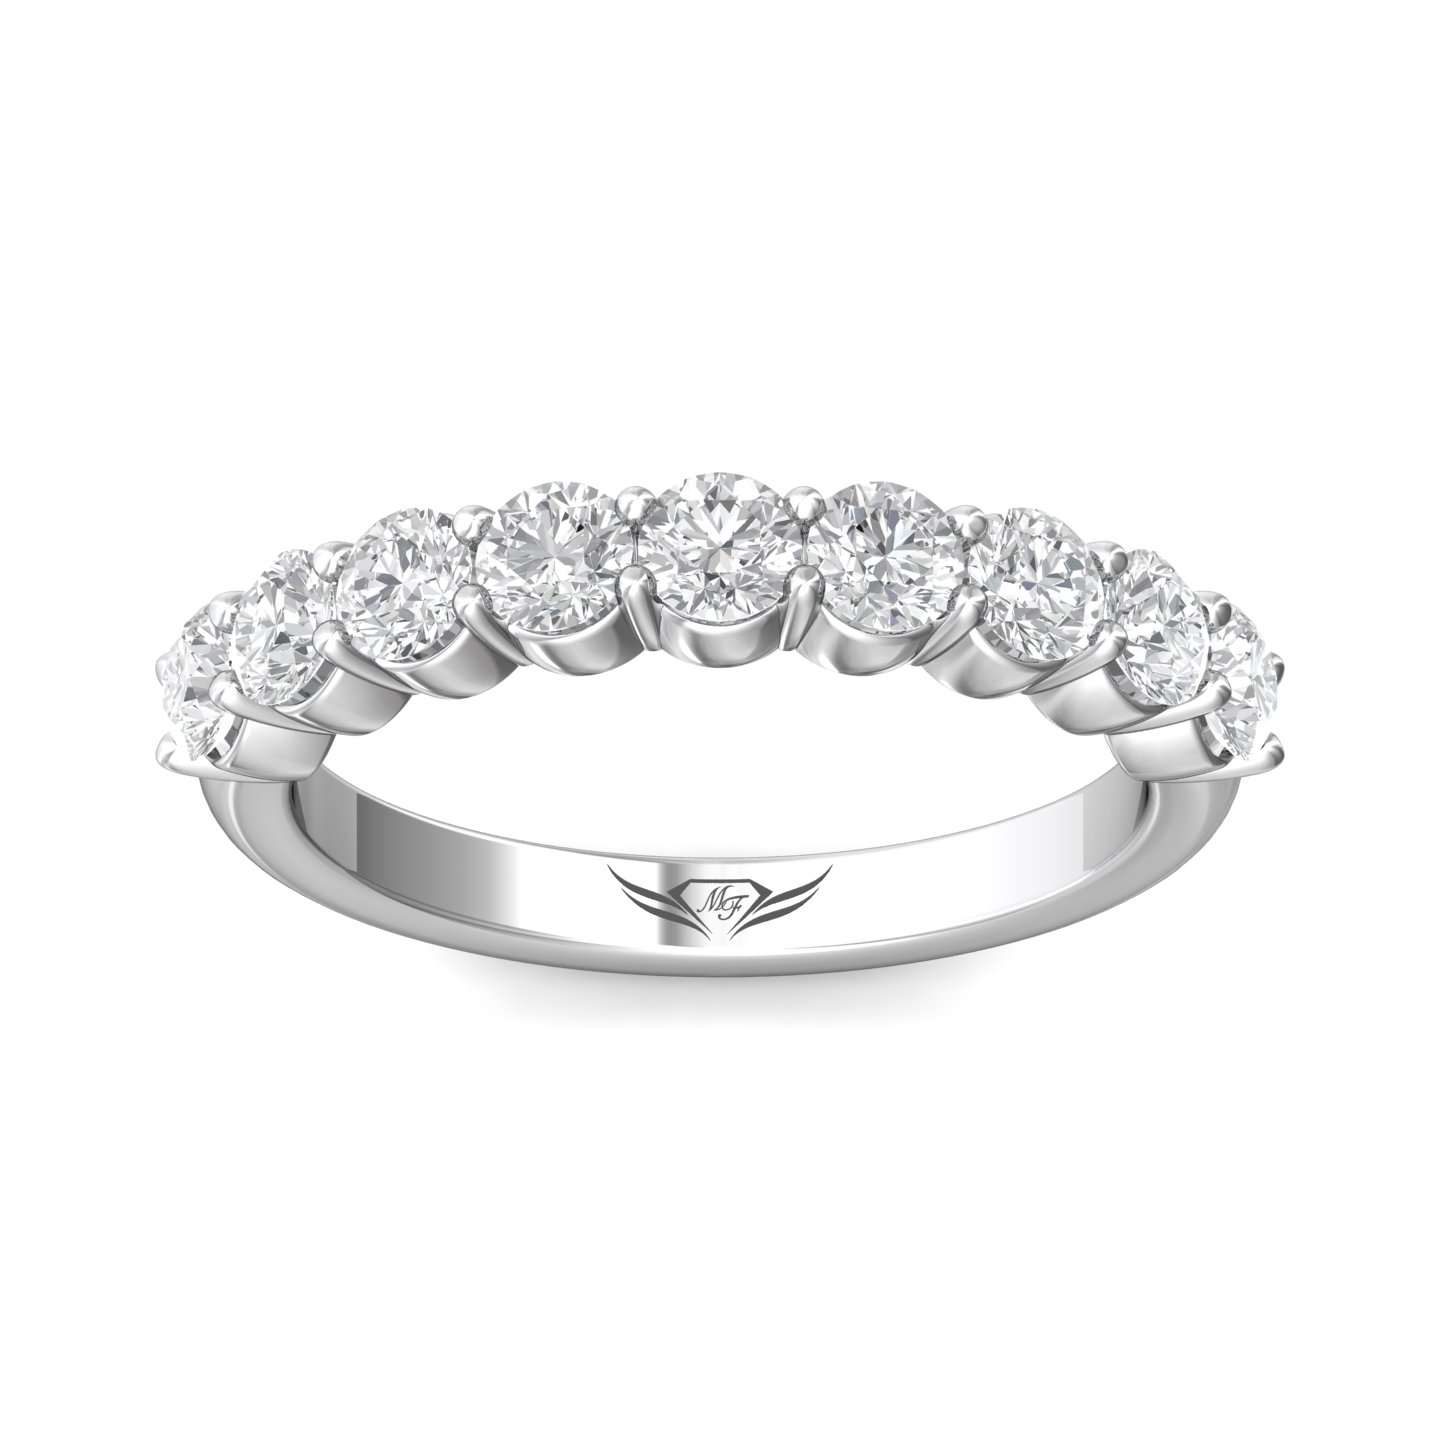 Rings - 14K White Gold FlyerFit Shared Prong Wedding Band - image #3